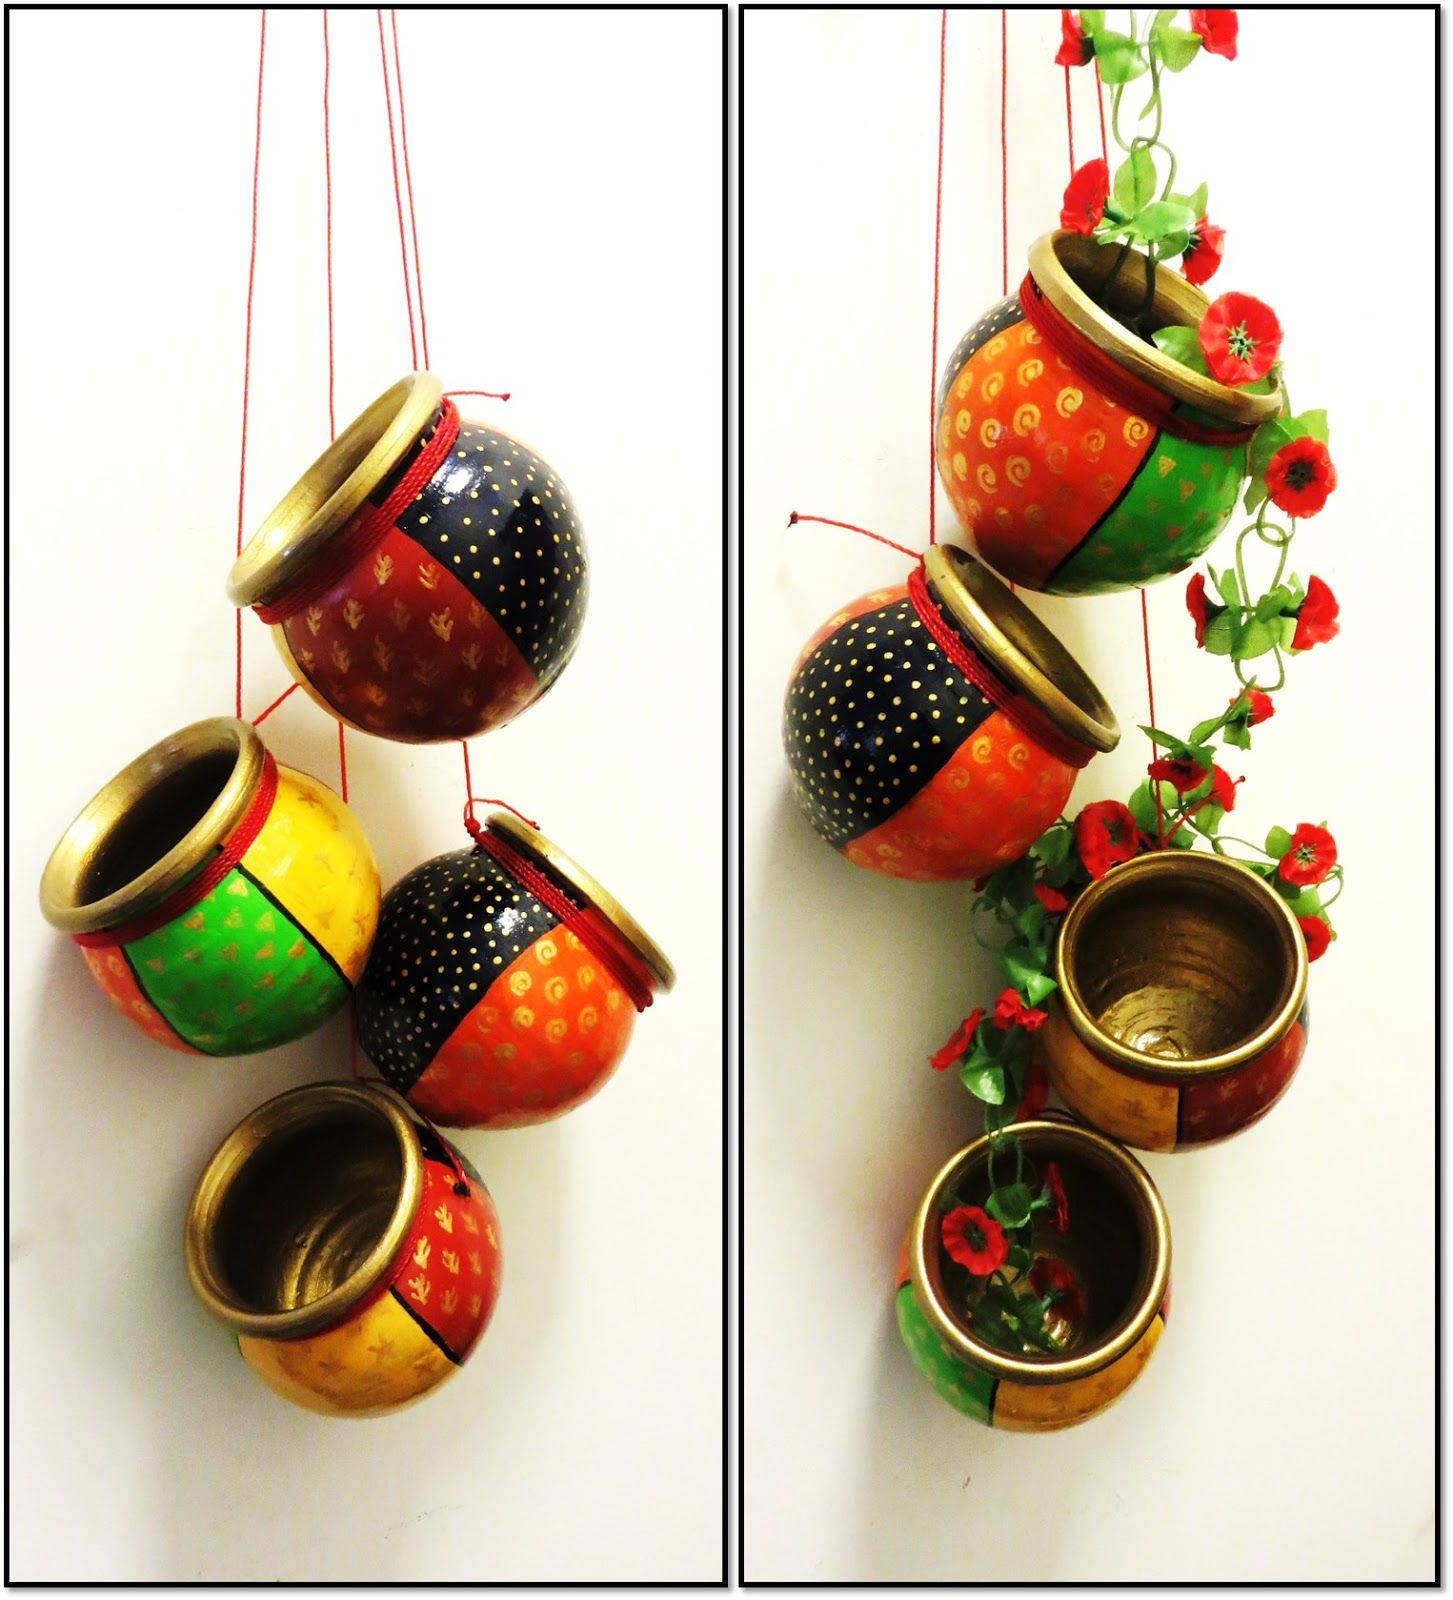 Indian Hand Painted Clay Pots have hand painted lots of